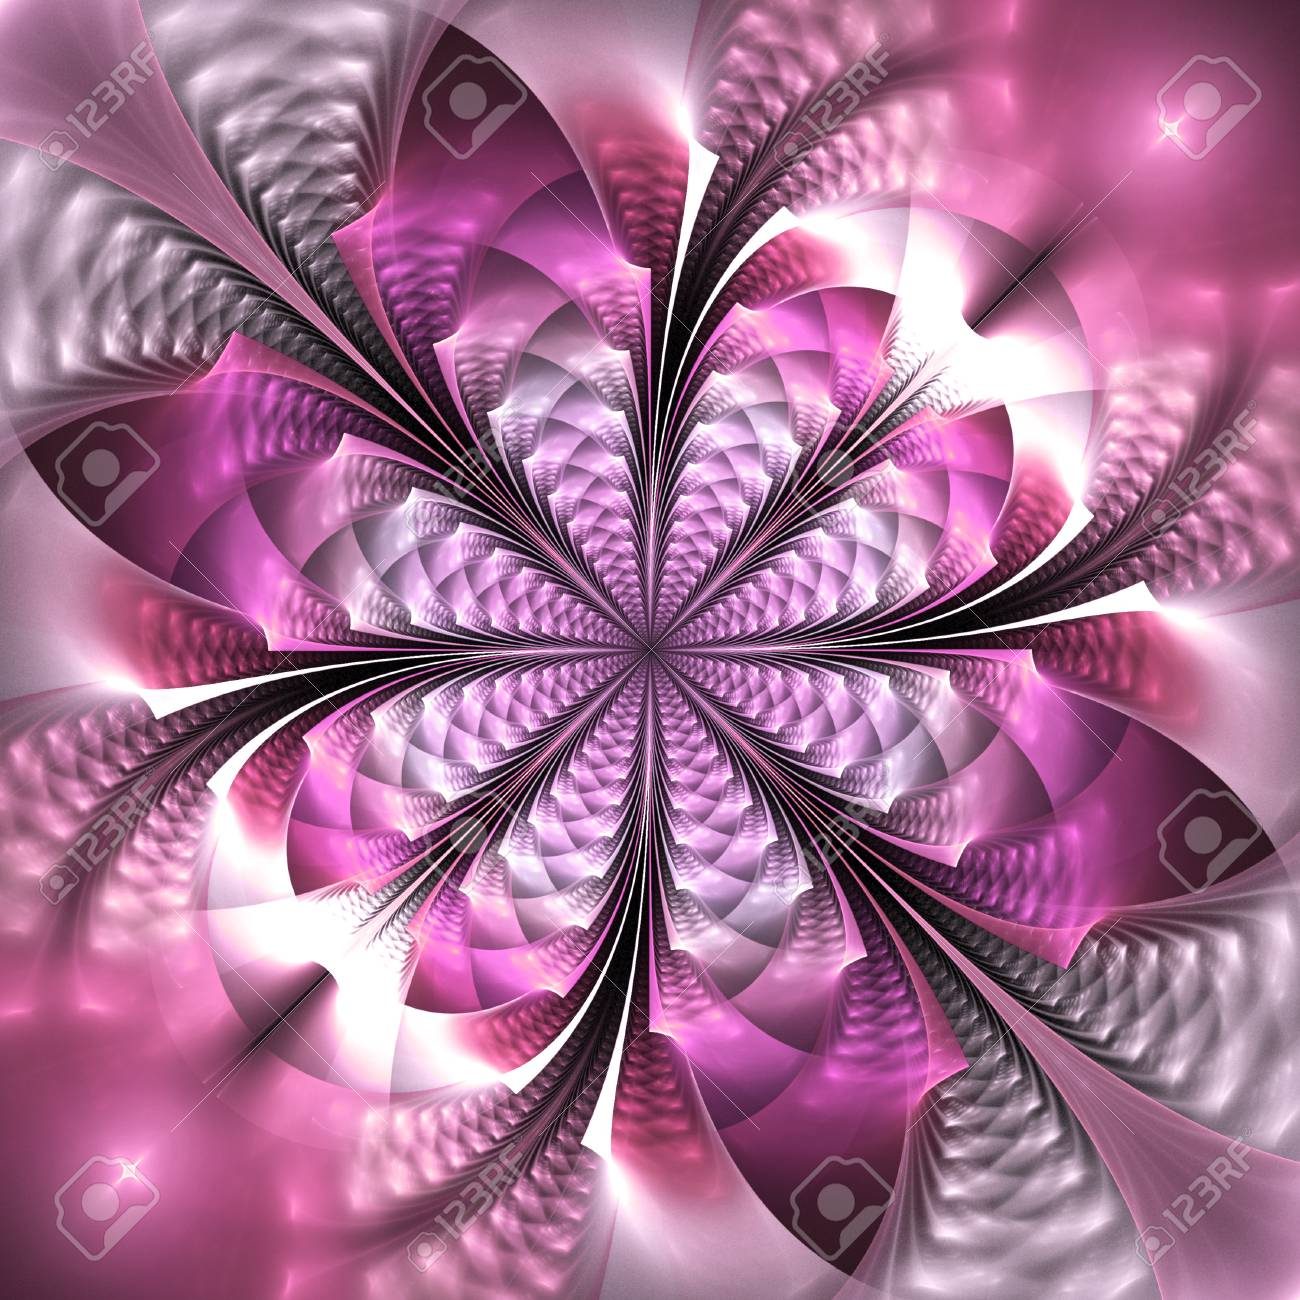 67171970 abstract exotic flower in pink colors psychedelic design for wallpapers or textile fractal art 3d re